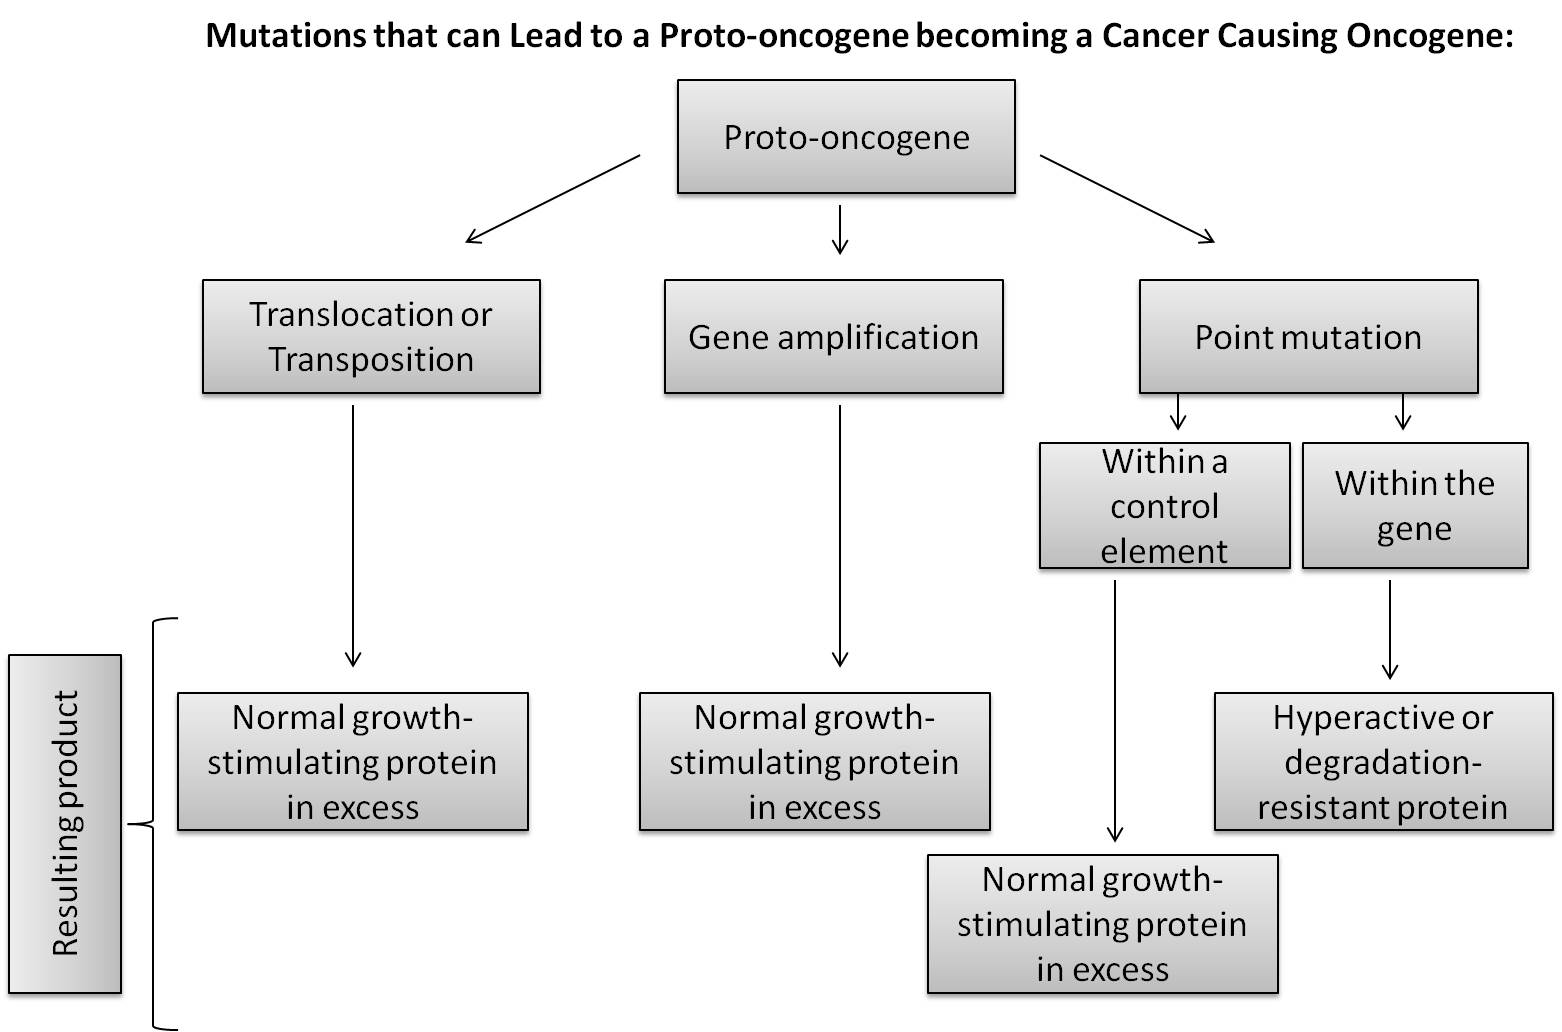 Flow Chart Powerpoint: Conversion of proto-oncogene flow chart.jpg - Wikimedia Commons,Chart